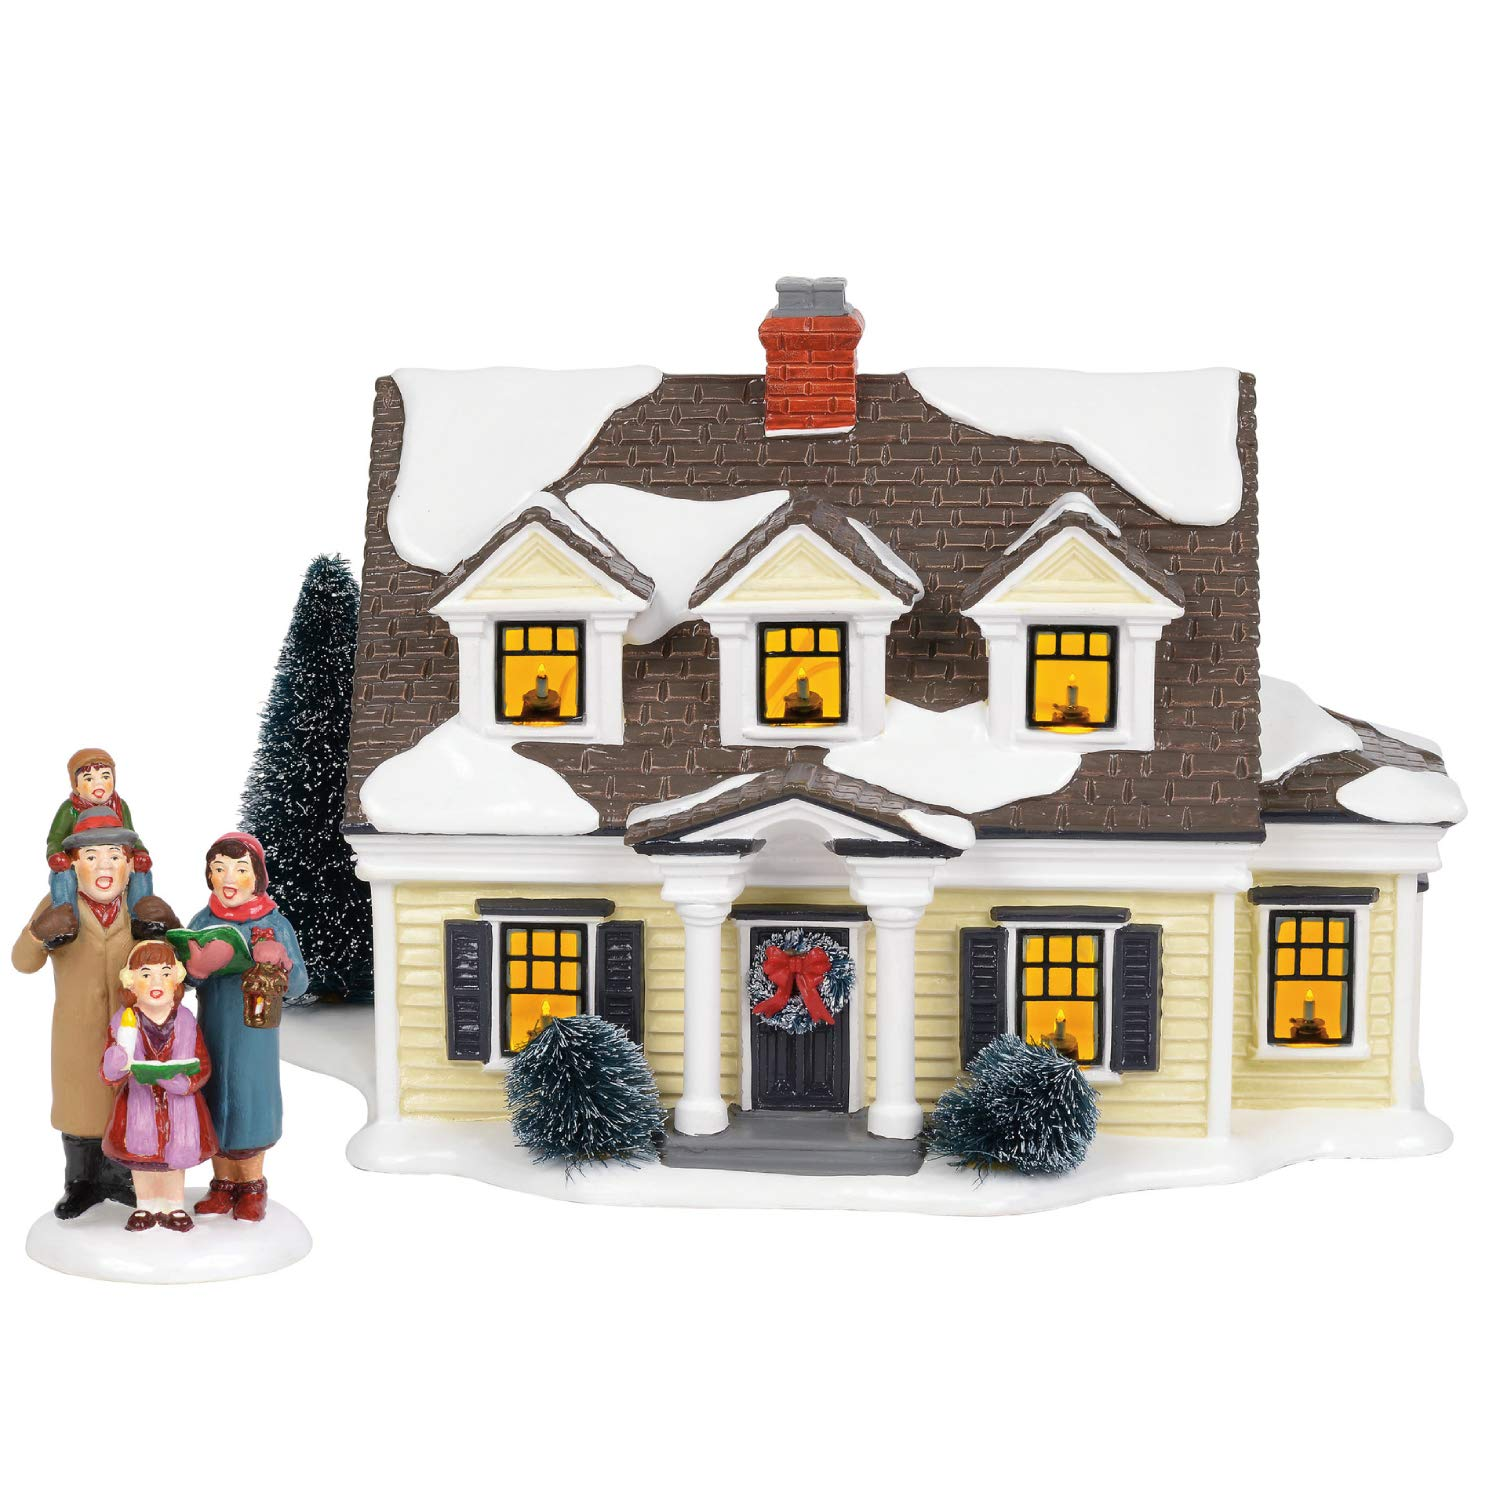 Department56 Original Snow Village Welcoming Christmas Lit Building and Accessory, 7.09'', Multicolor